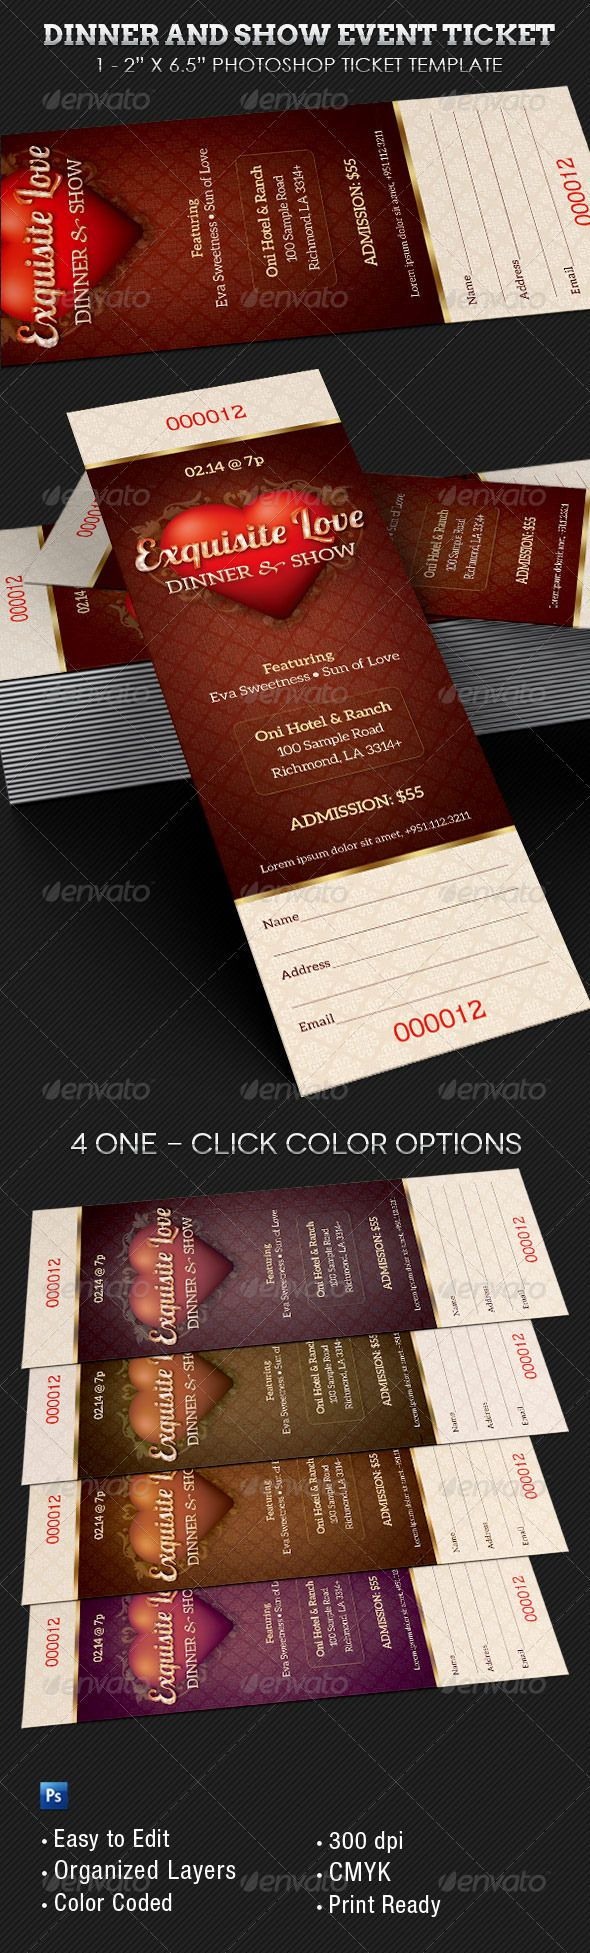 ticket sales tracker office templates